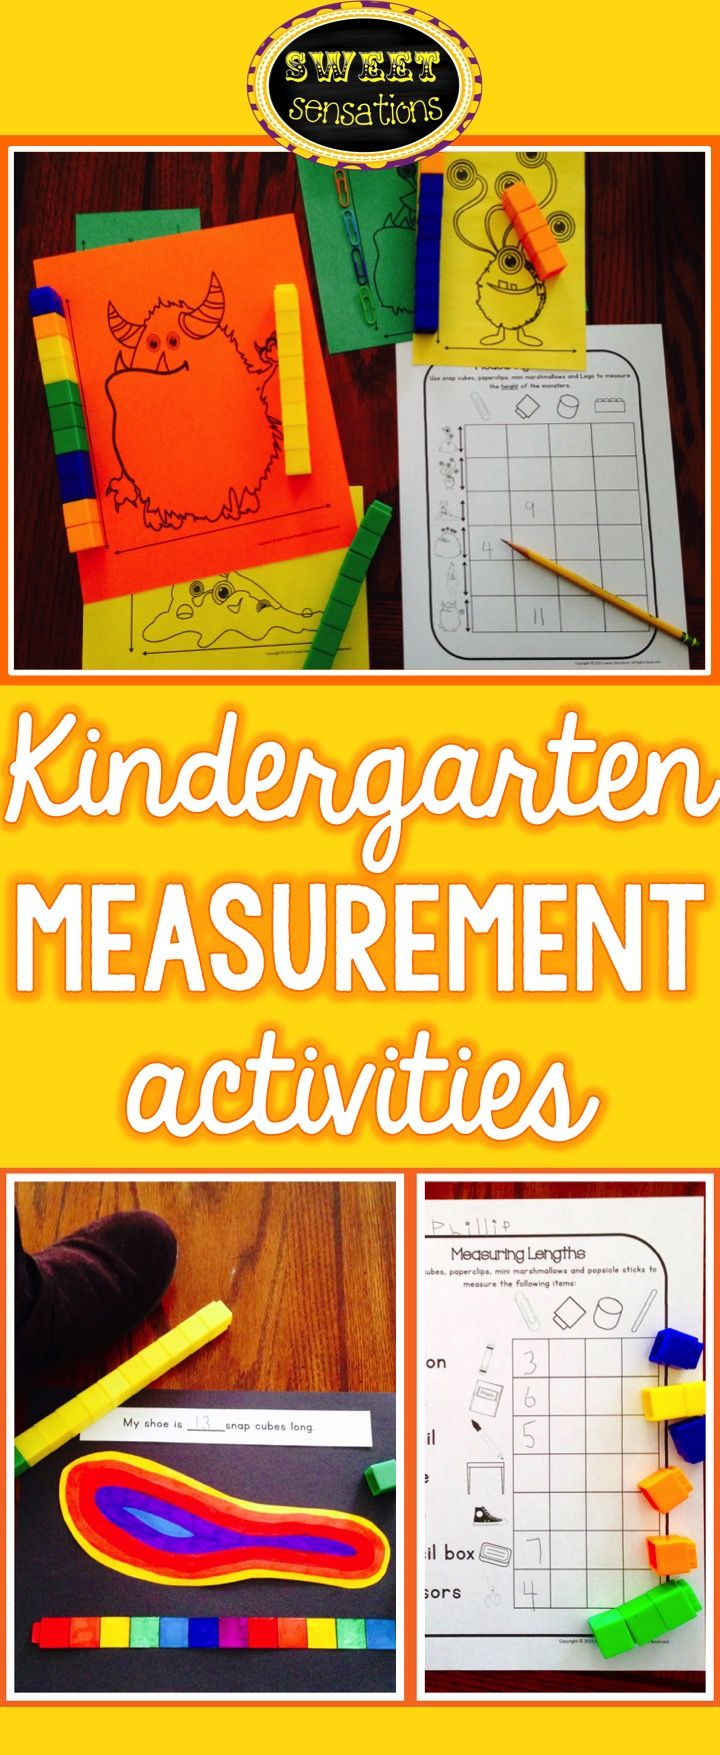 Use to supplement teaching of measurement to kindergarten.  Includes 4 'Why do we measure?' 'What can we measure?' sheets; 7 Length sheets; 4 measuring shoe length sheets; 6 'Measuring Monsters' math station sheets; 4 Weight sheets; 3 Capacity/Volume sheets $7.00